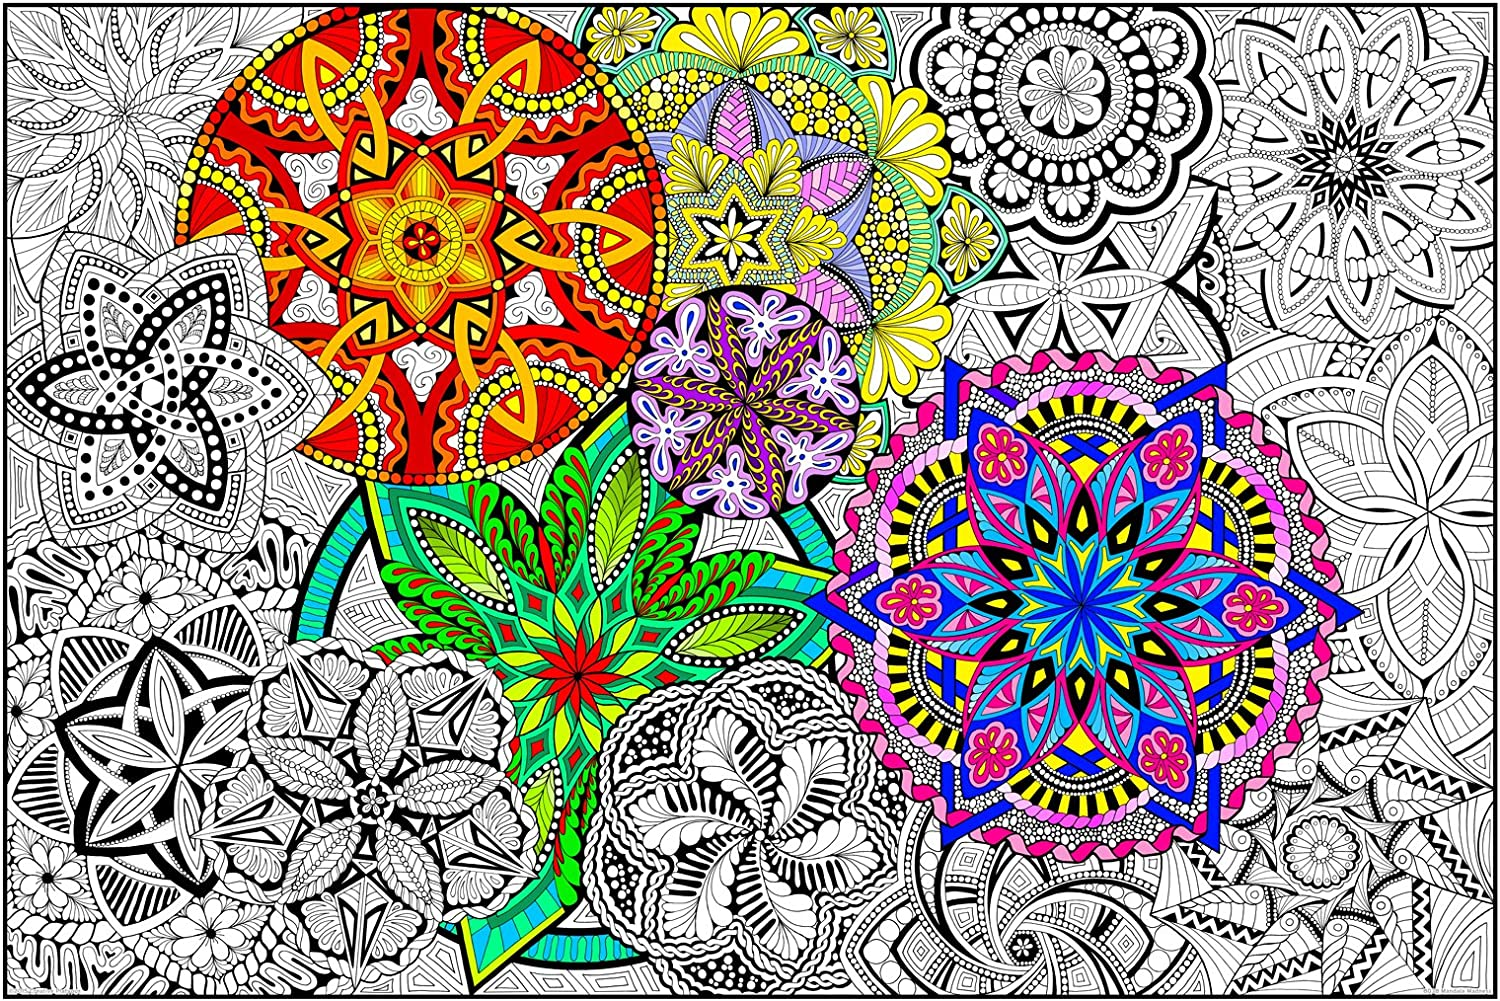 "Mandala Madness - Giant Wall Size Coloring Poster - 32.5"" X 22"" (Great for Kids, Adults, Classrooms, Care Facilities and Families!) 919pkfGlitL"